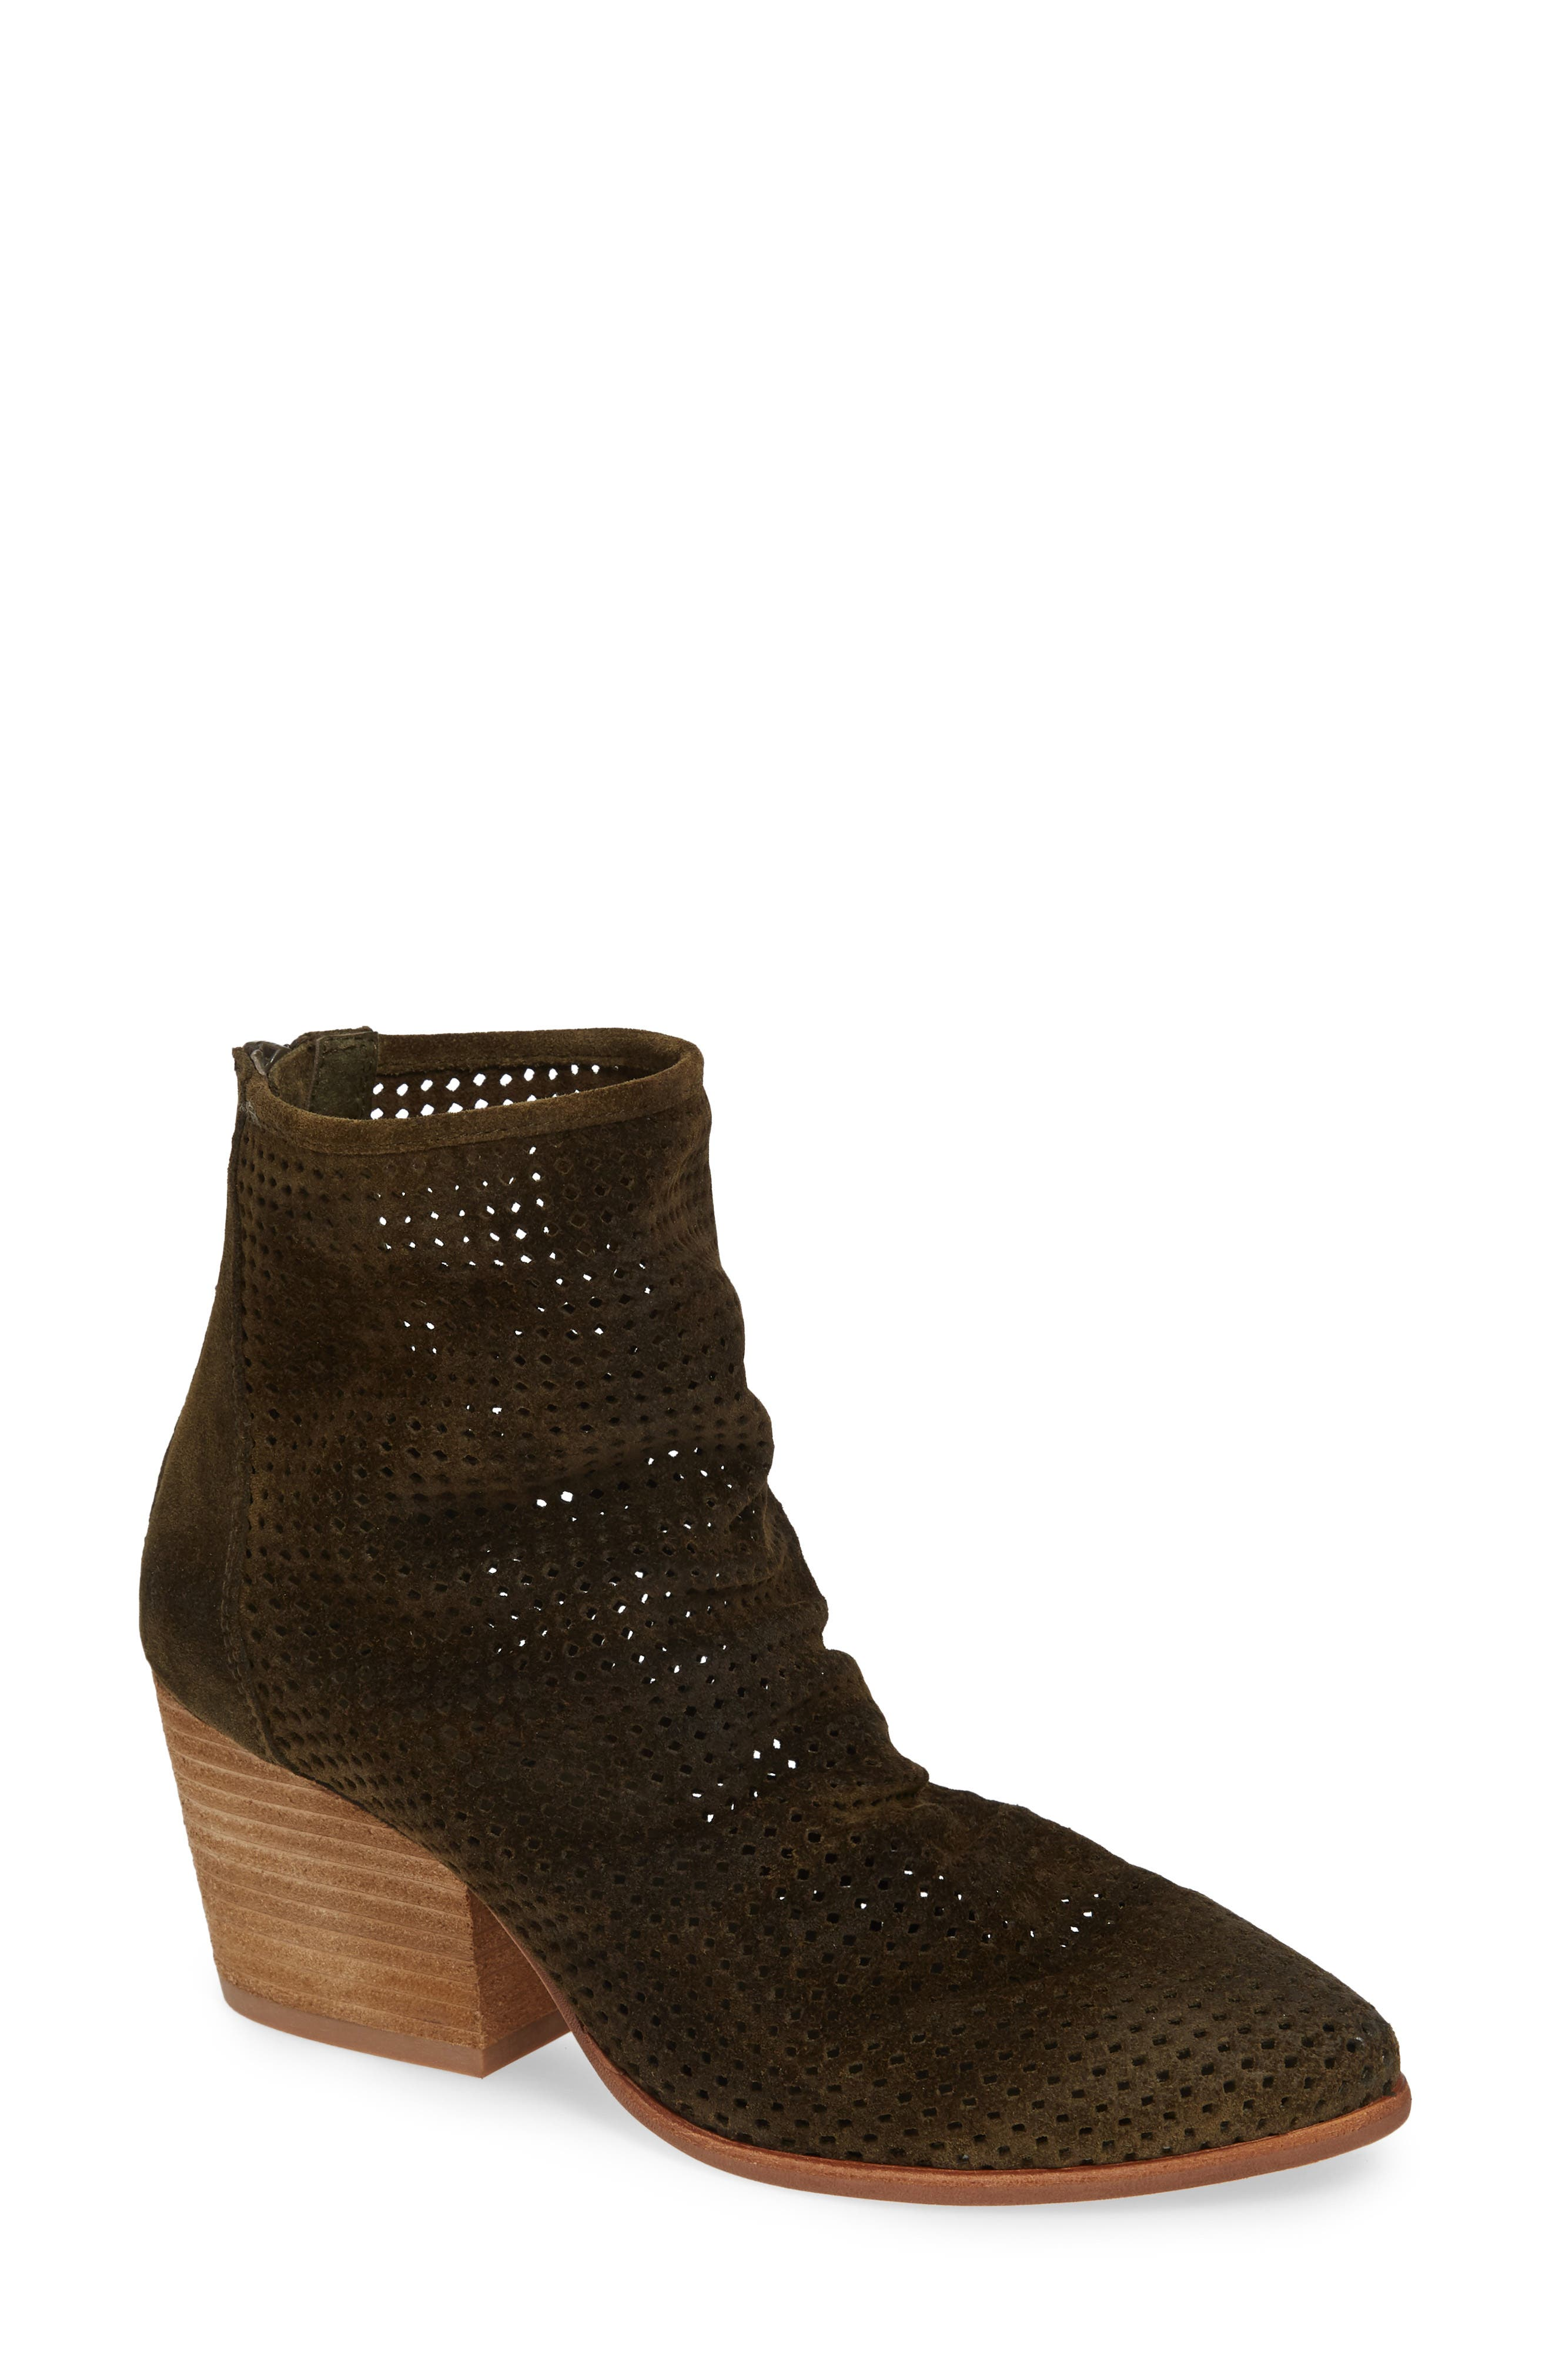 Jeffrey Campbell Jenelle Boot, Green